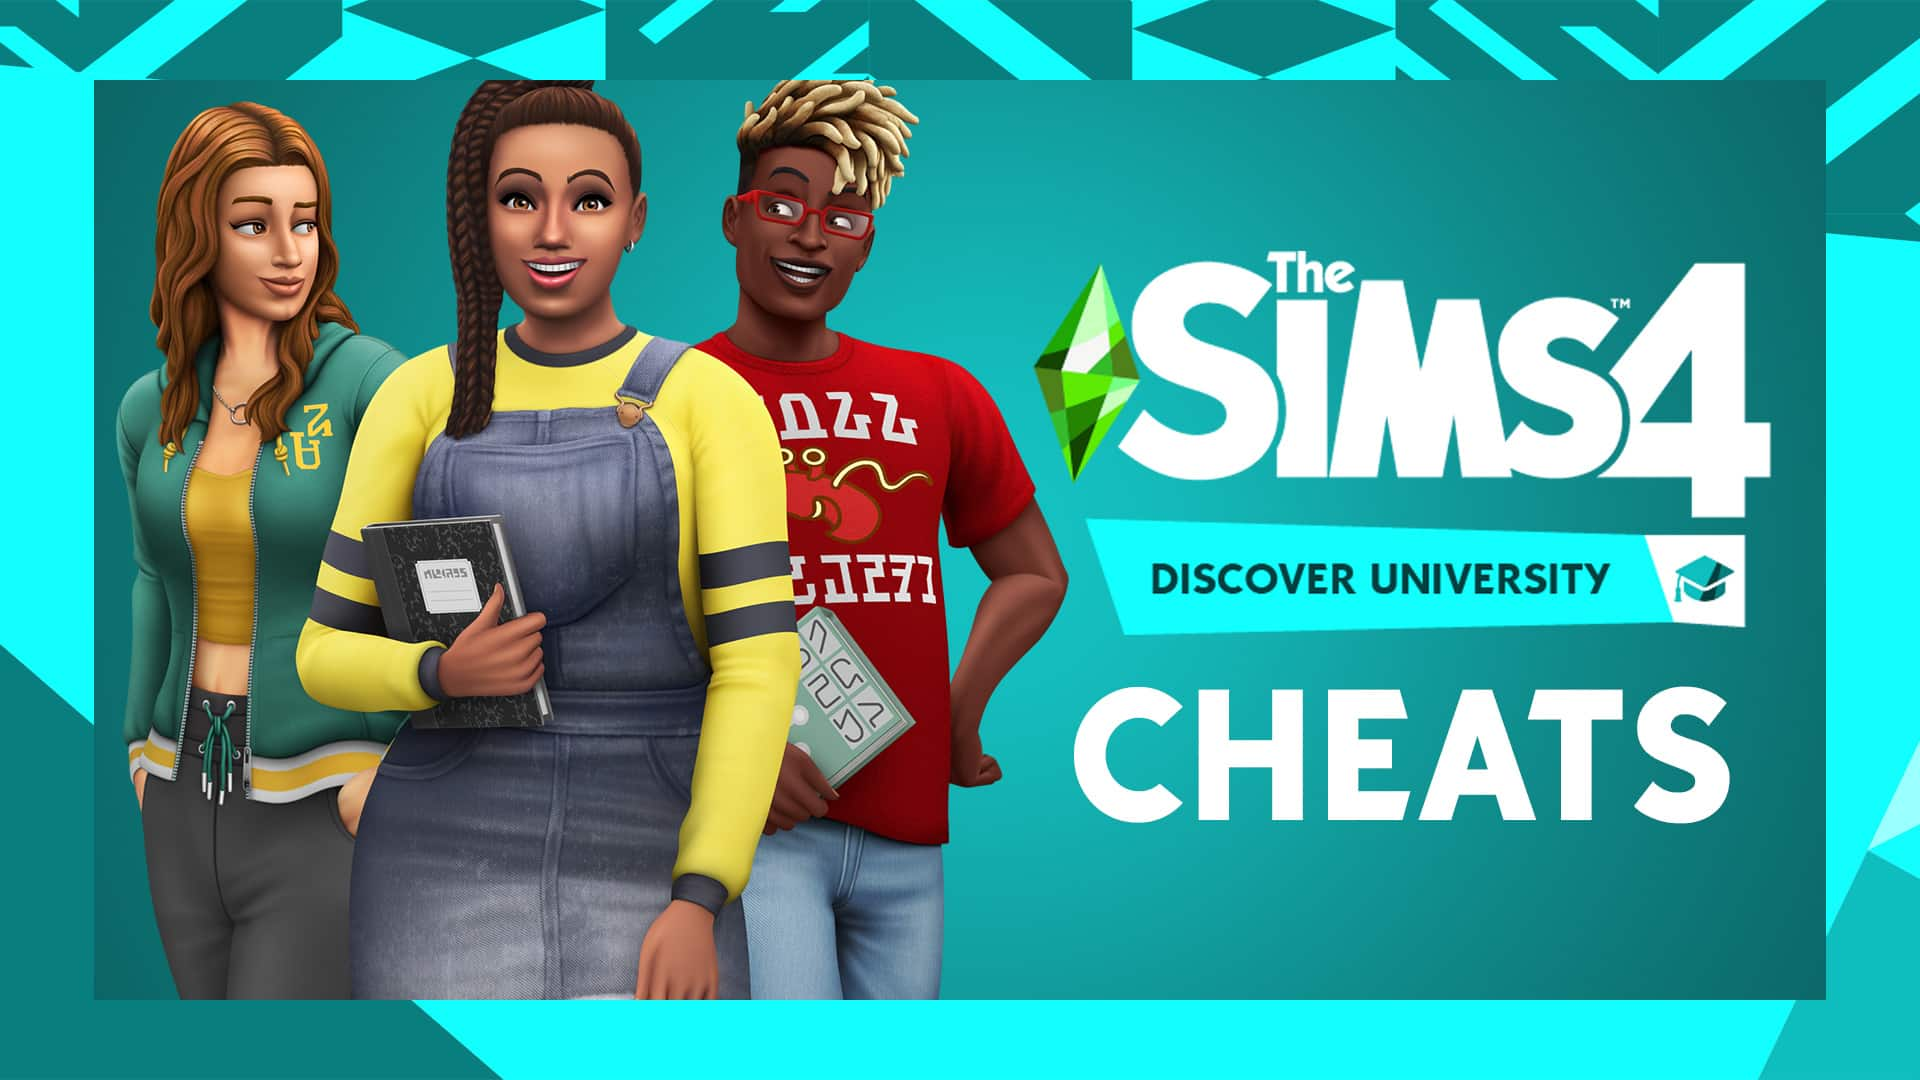 The Sims 4 Discover University Cheats